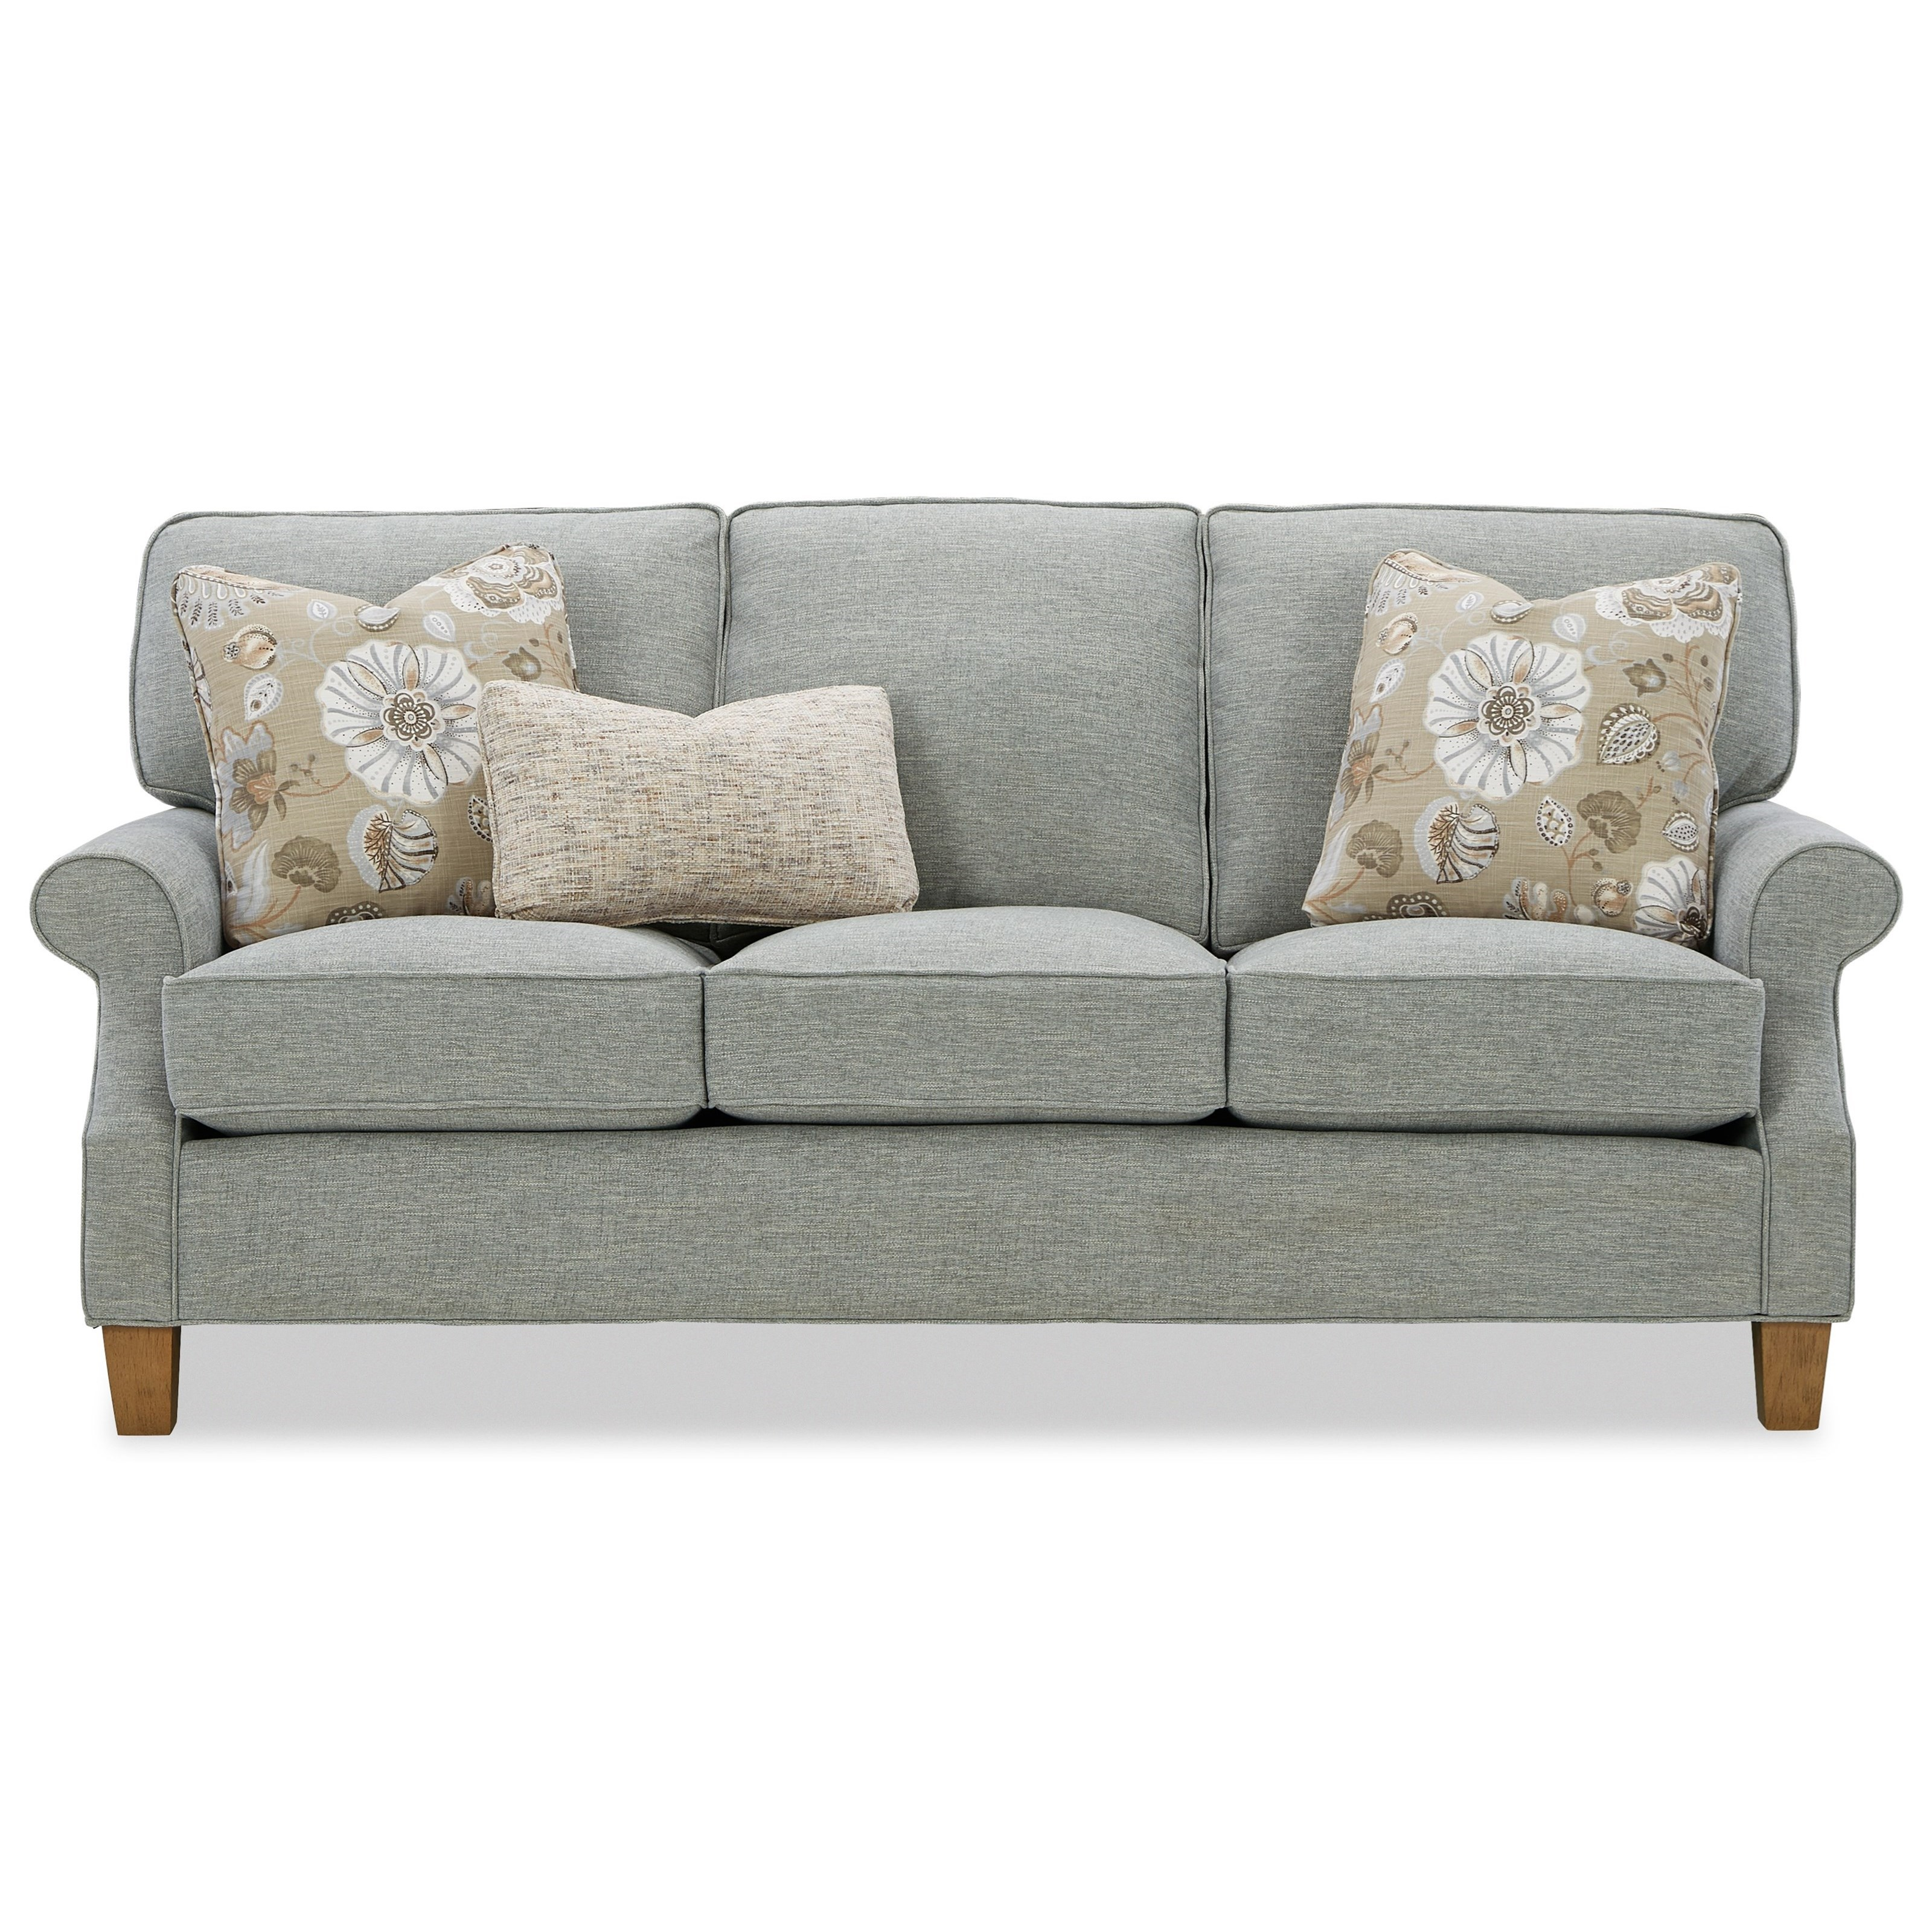 7745 3/3 Sofa by Craftmaster at Esprit Decor Home Furnishings